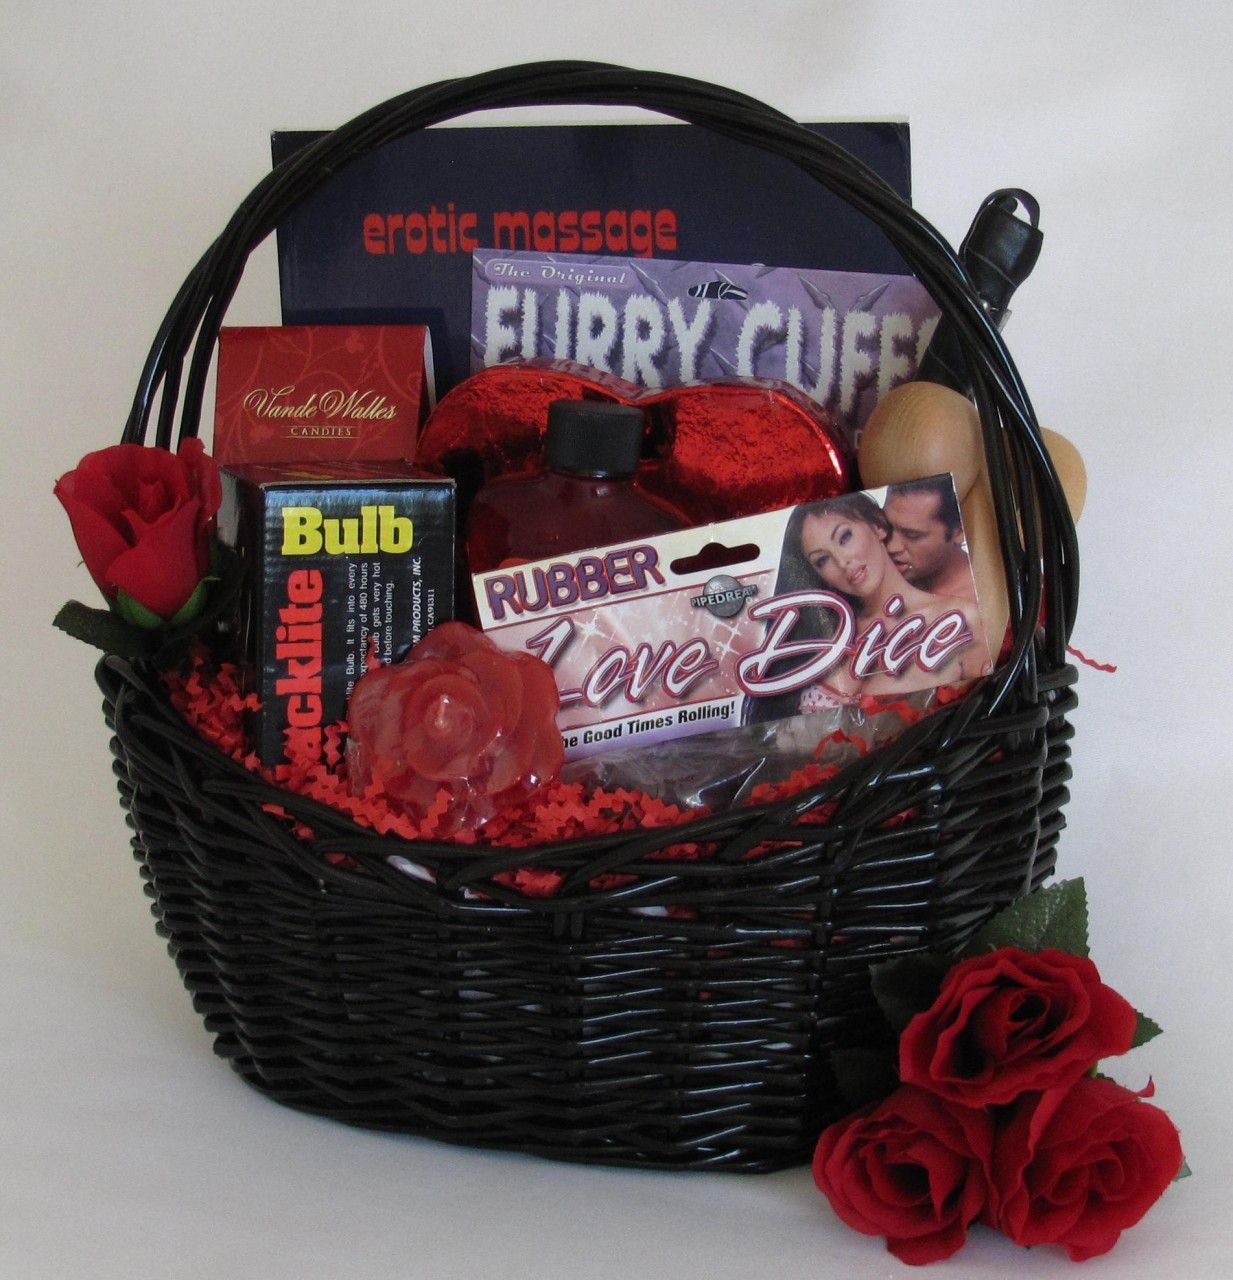 Gift baskets galore naughty but nice gift basket 6969 http gift baskets galore naughty but nice gift basket 6969 http sciox Choice Image